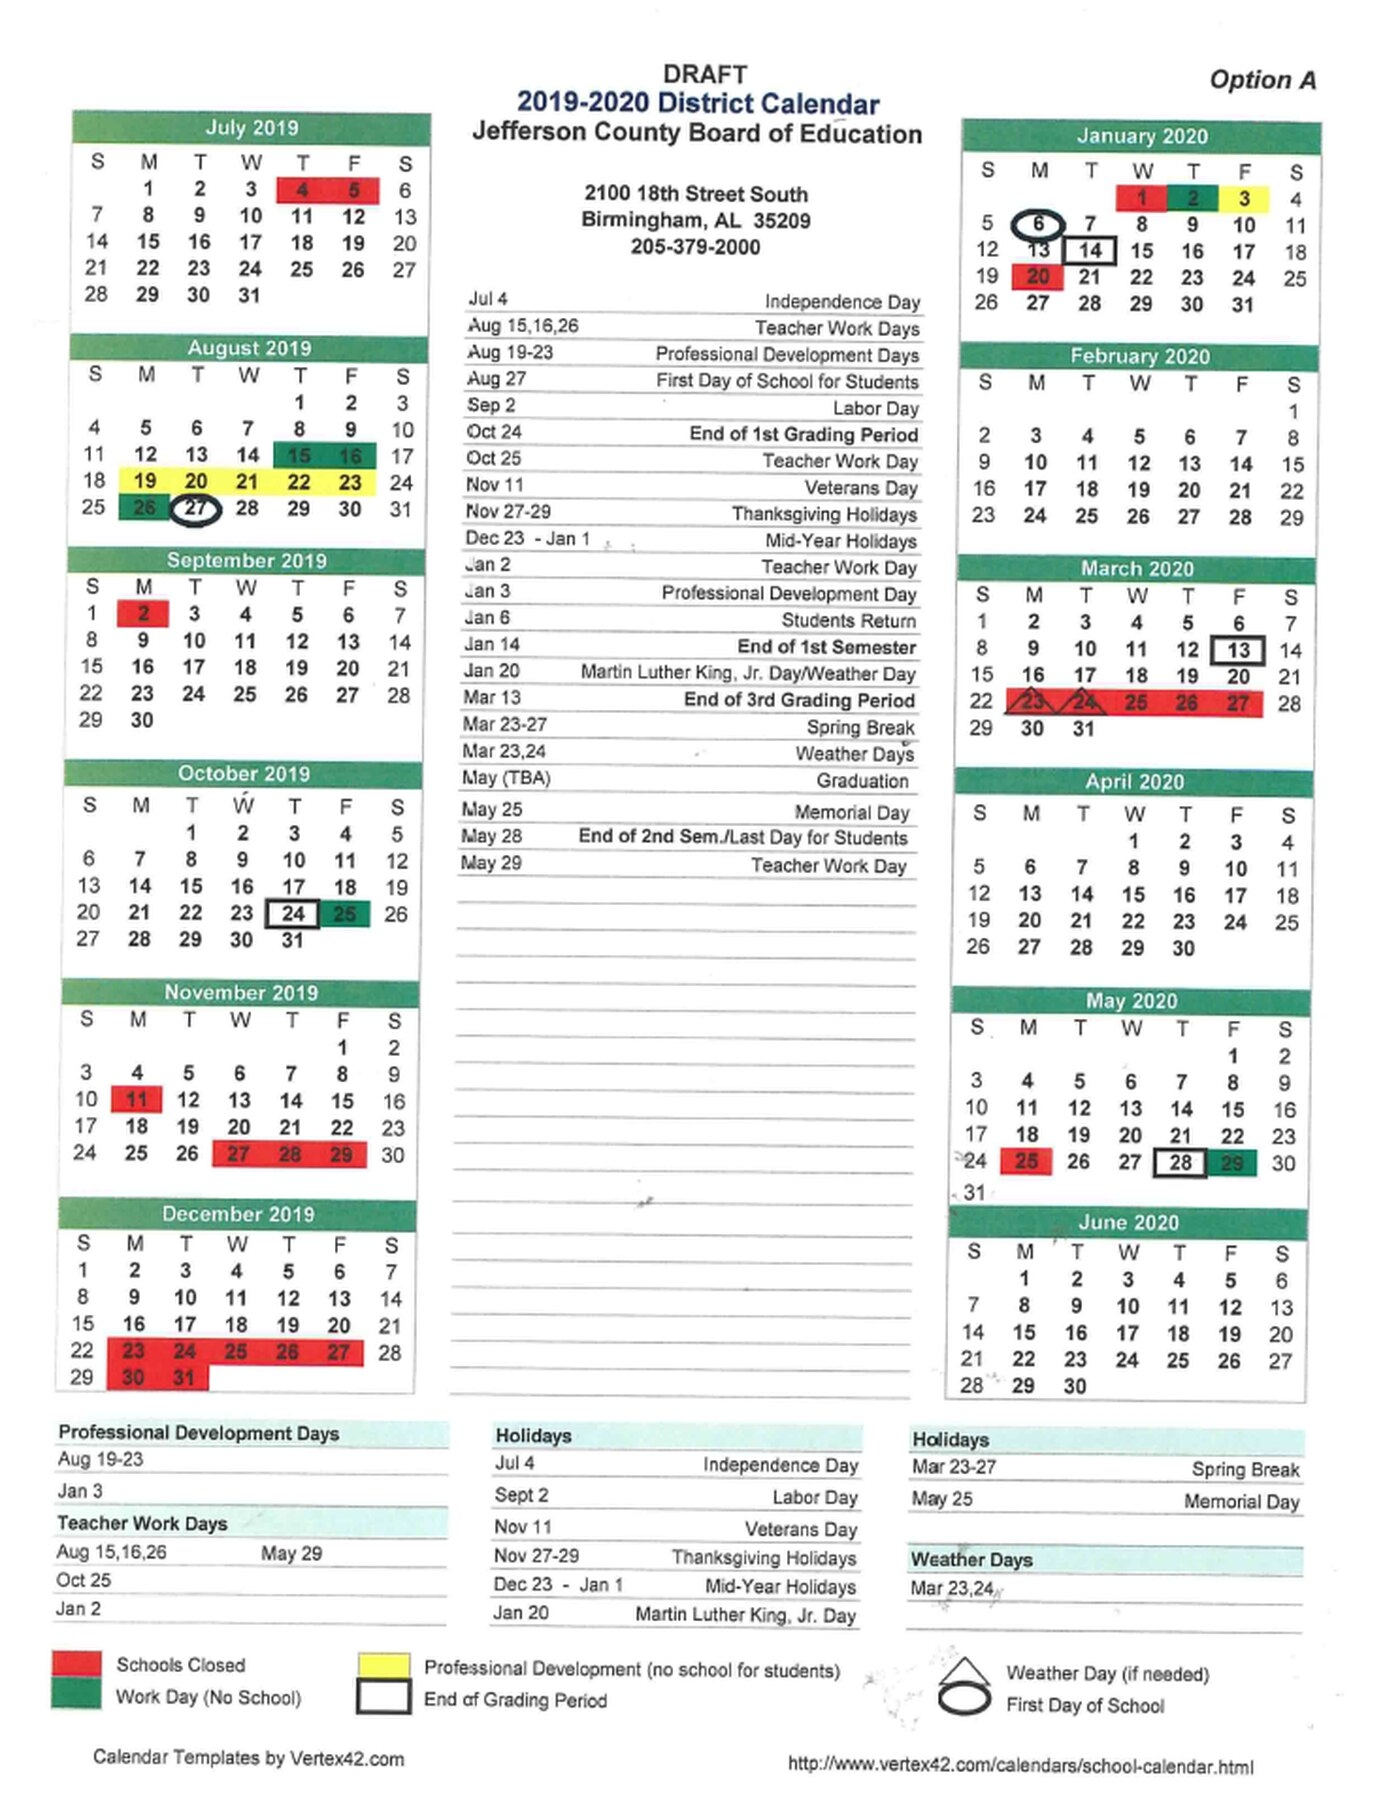 Jefferson County School Students Could Start School In September And_School Calendar Jefferson County Alabama